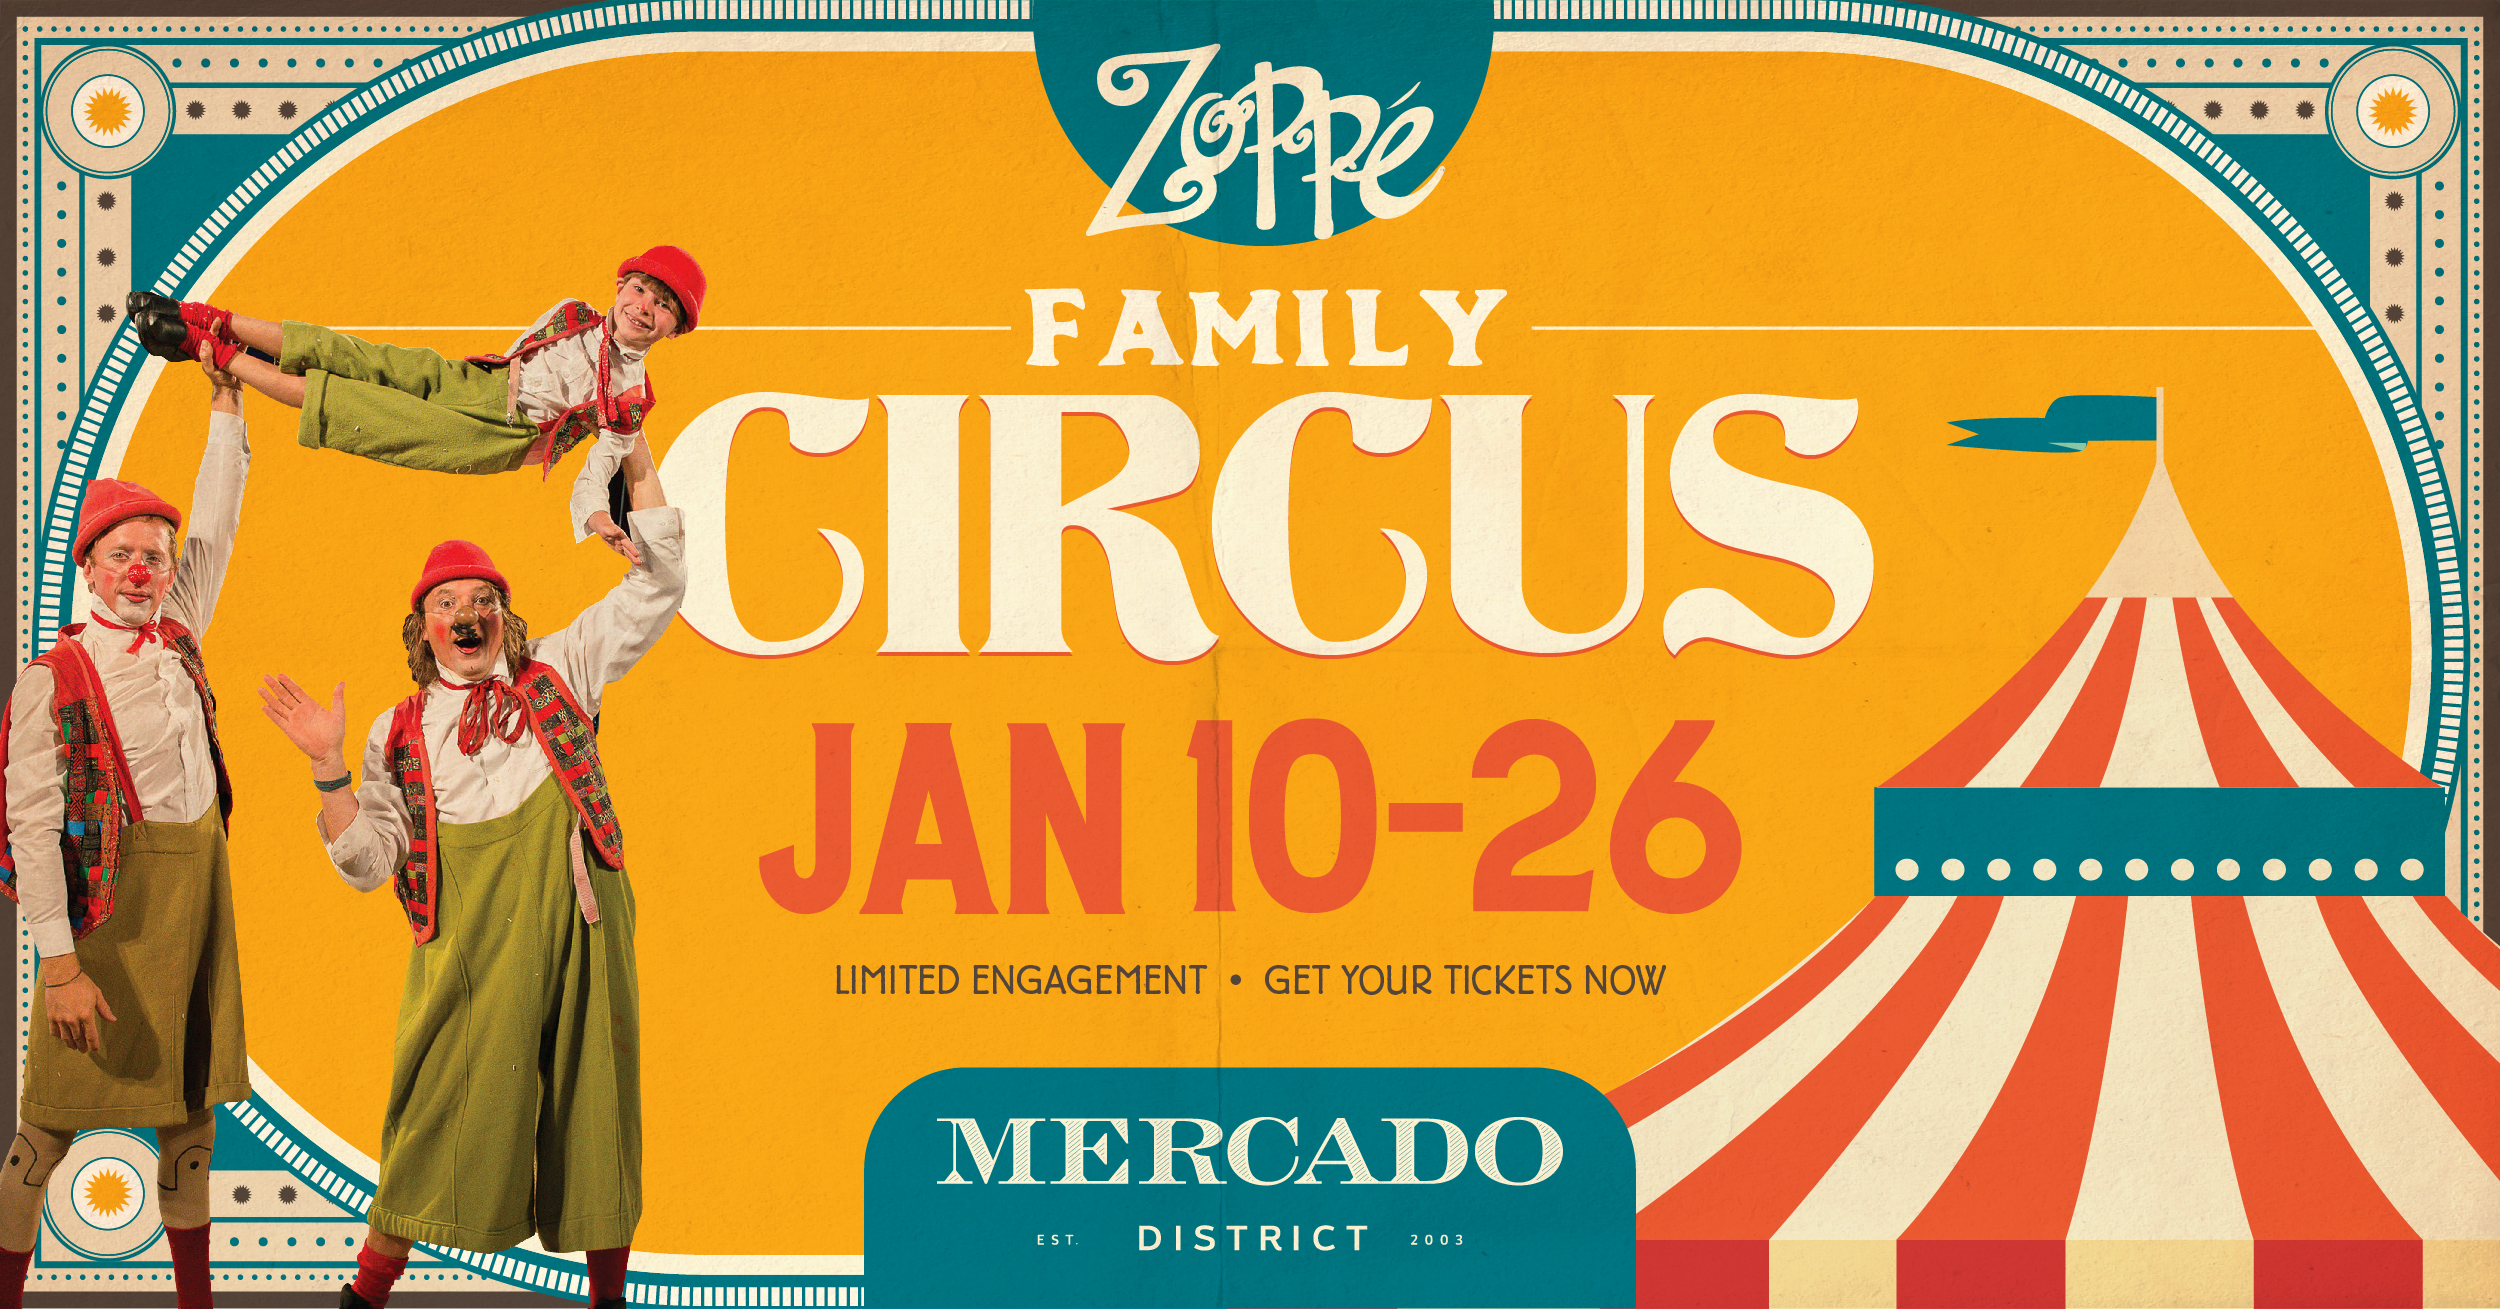 Zoppe Family Circus